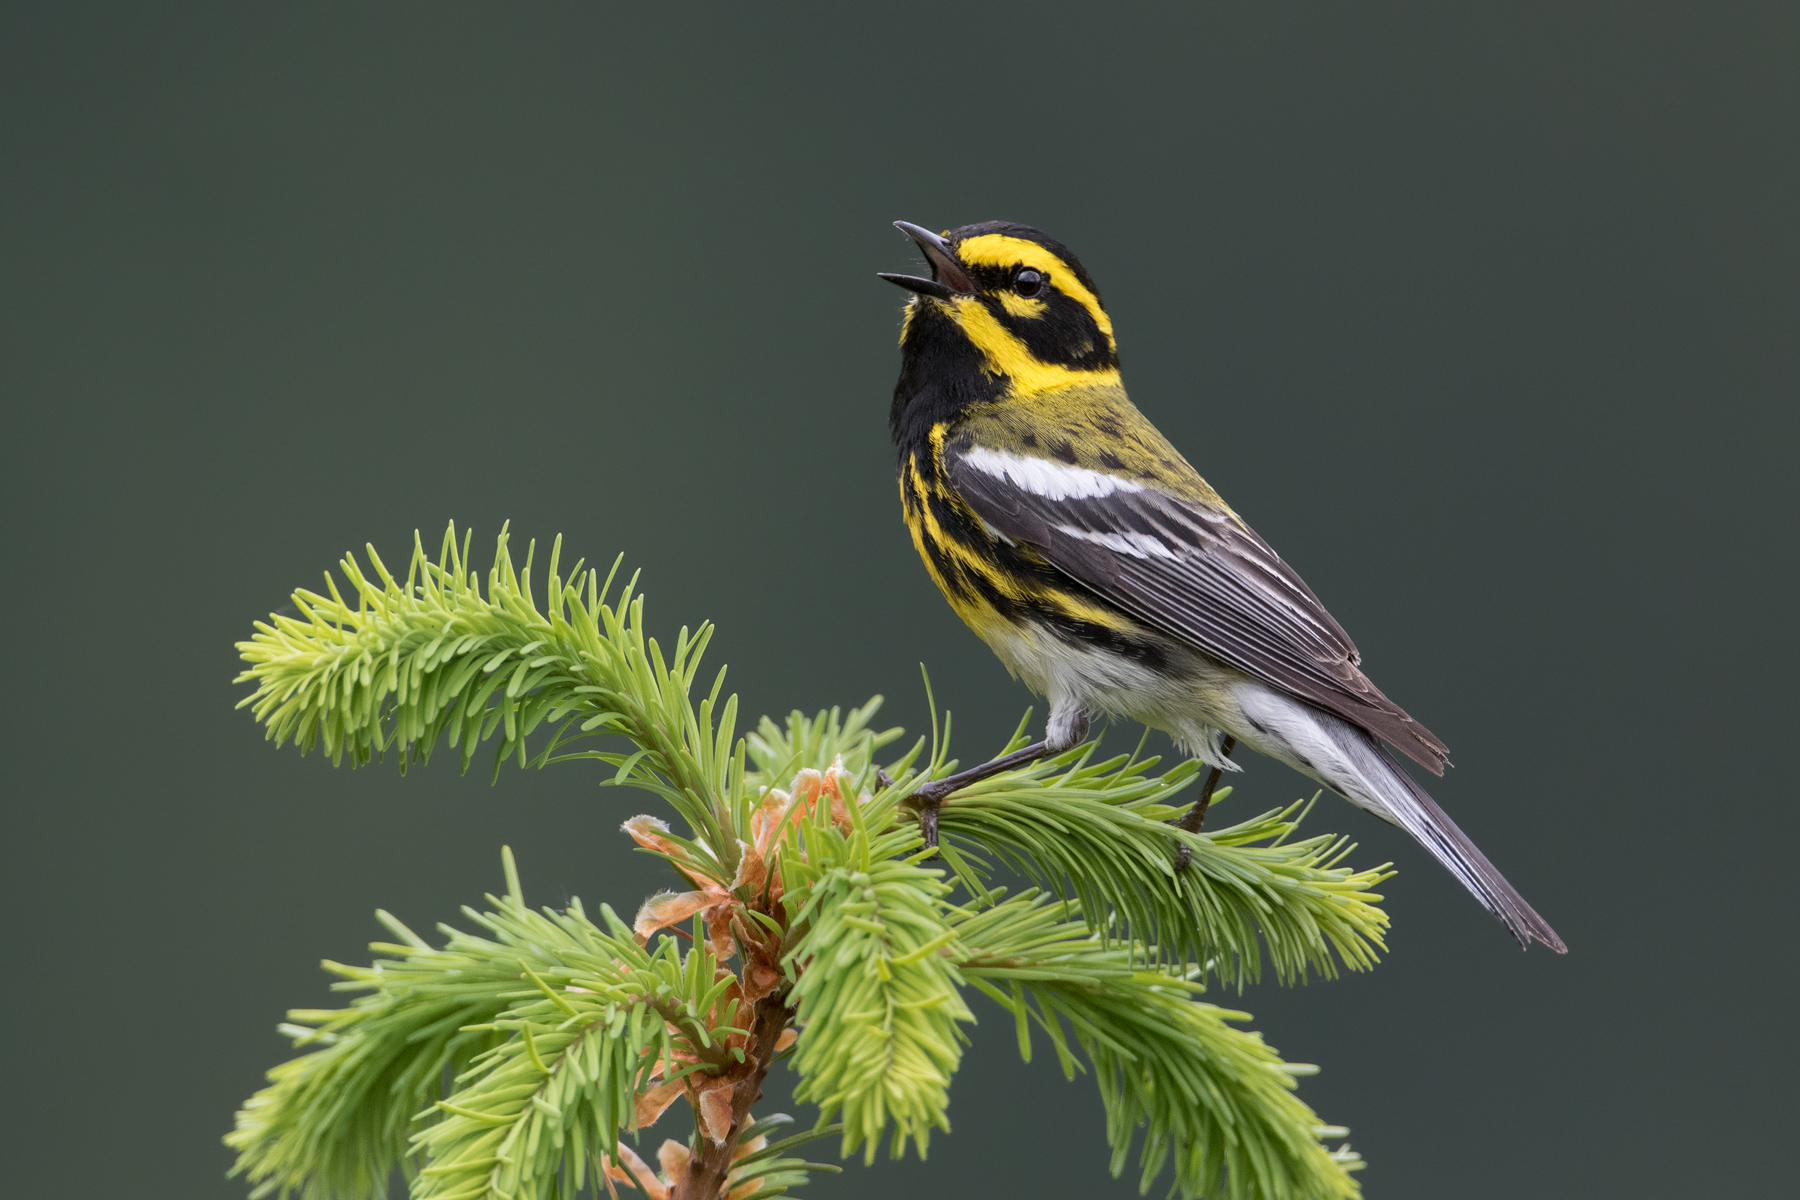 Having found a tall rocky outcropping surrounded by conifers while hiking during the winter, I made a note to return the following May. My hope was that the cliffs would allow for eye-level views of Townsend's Warbler: one of the most beautiful birds found here in the Pacific Northwest, who spend the majority of their time high in the canopy. Upon returning to the site during the breeding season, several males were staking their claim on territories.